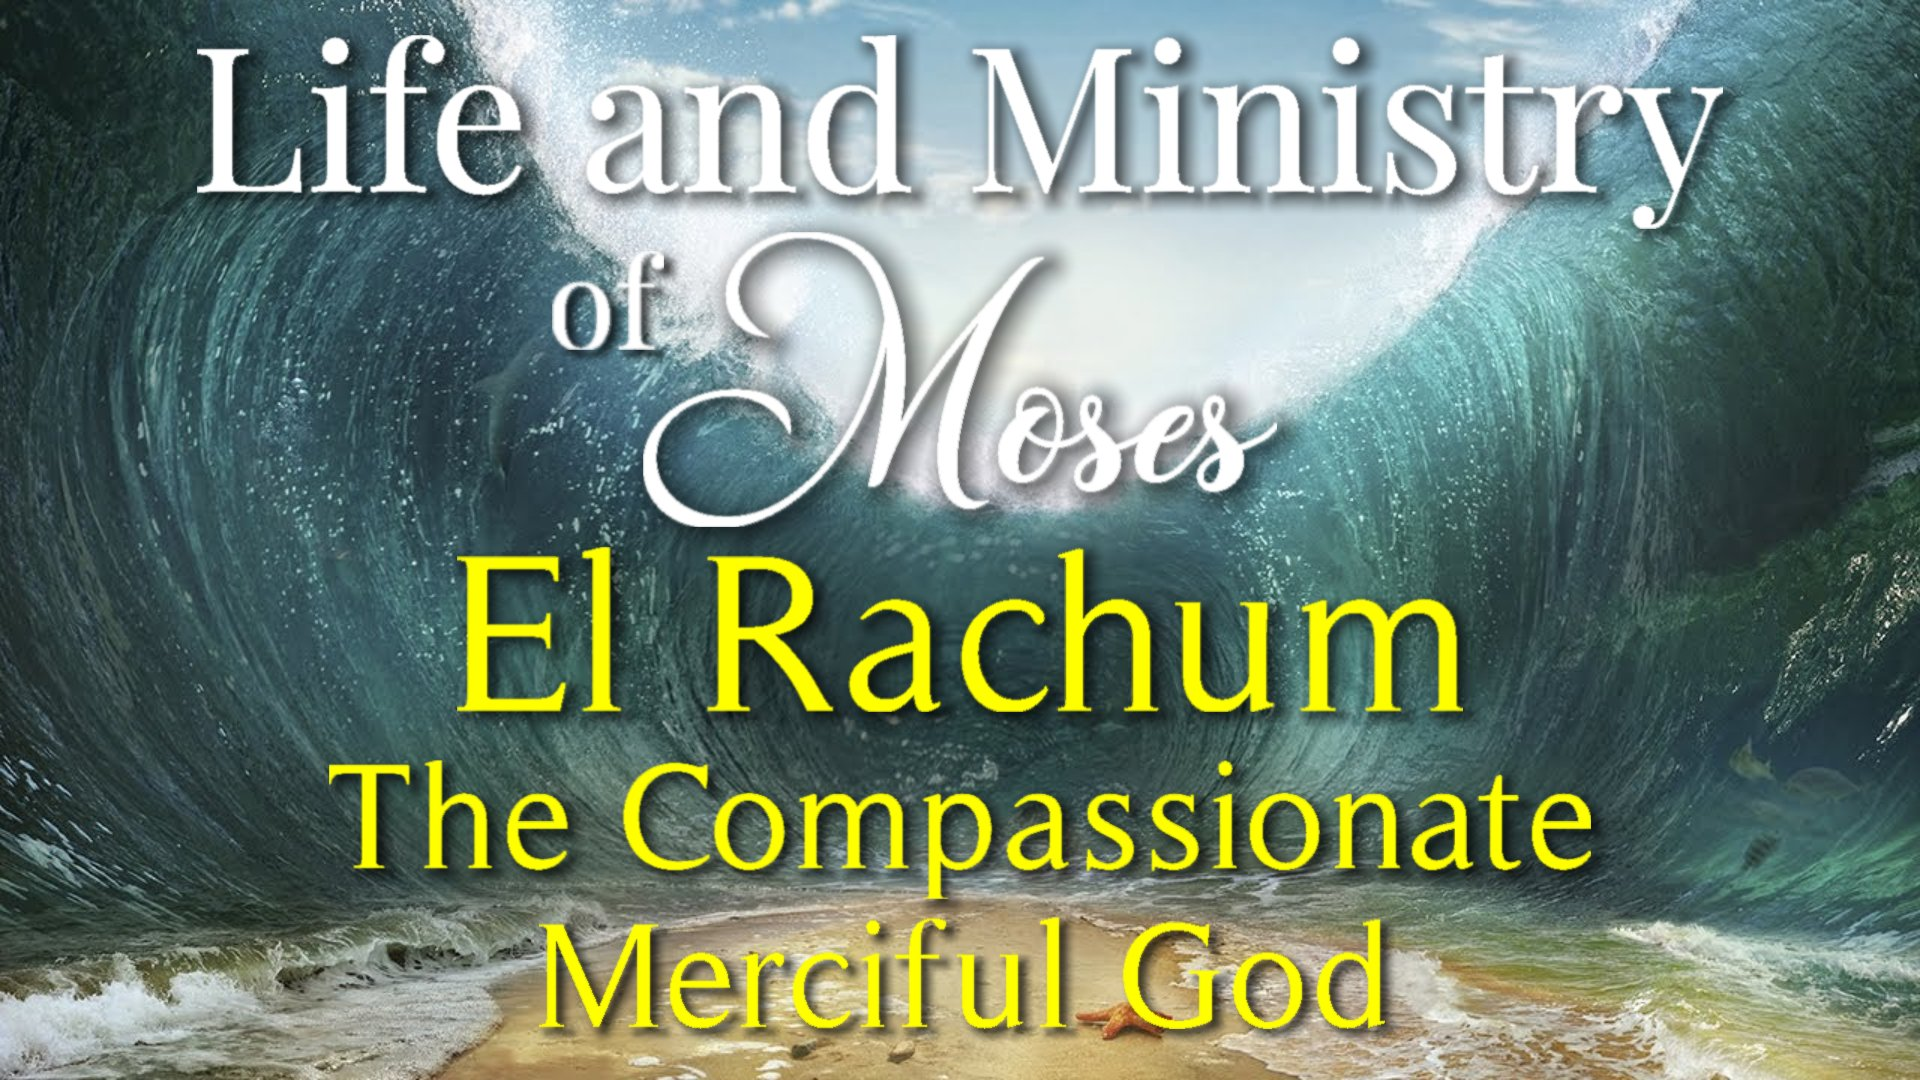 47 El Rachum, The Compassionate, Merciful God